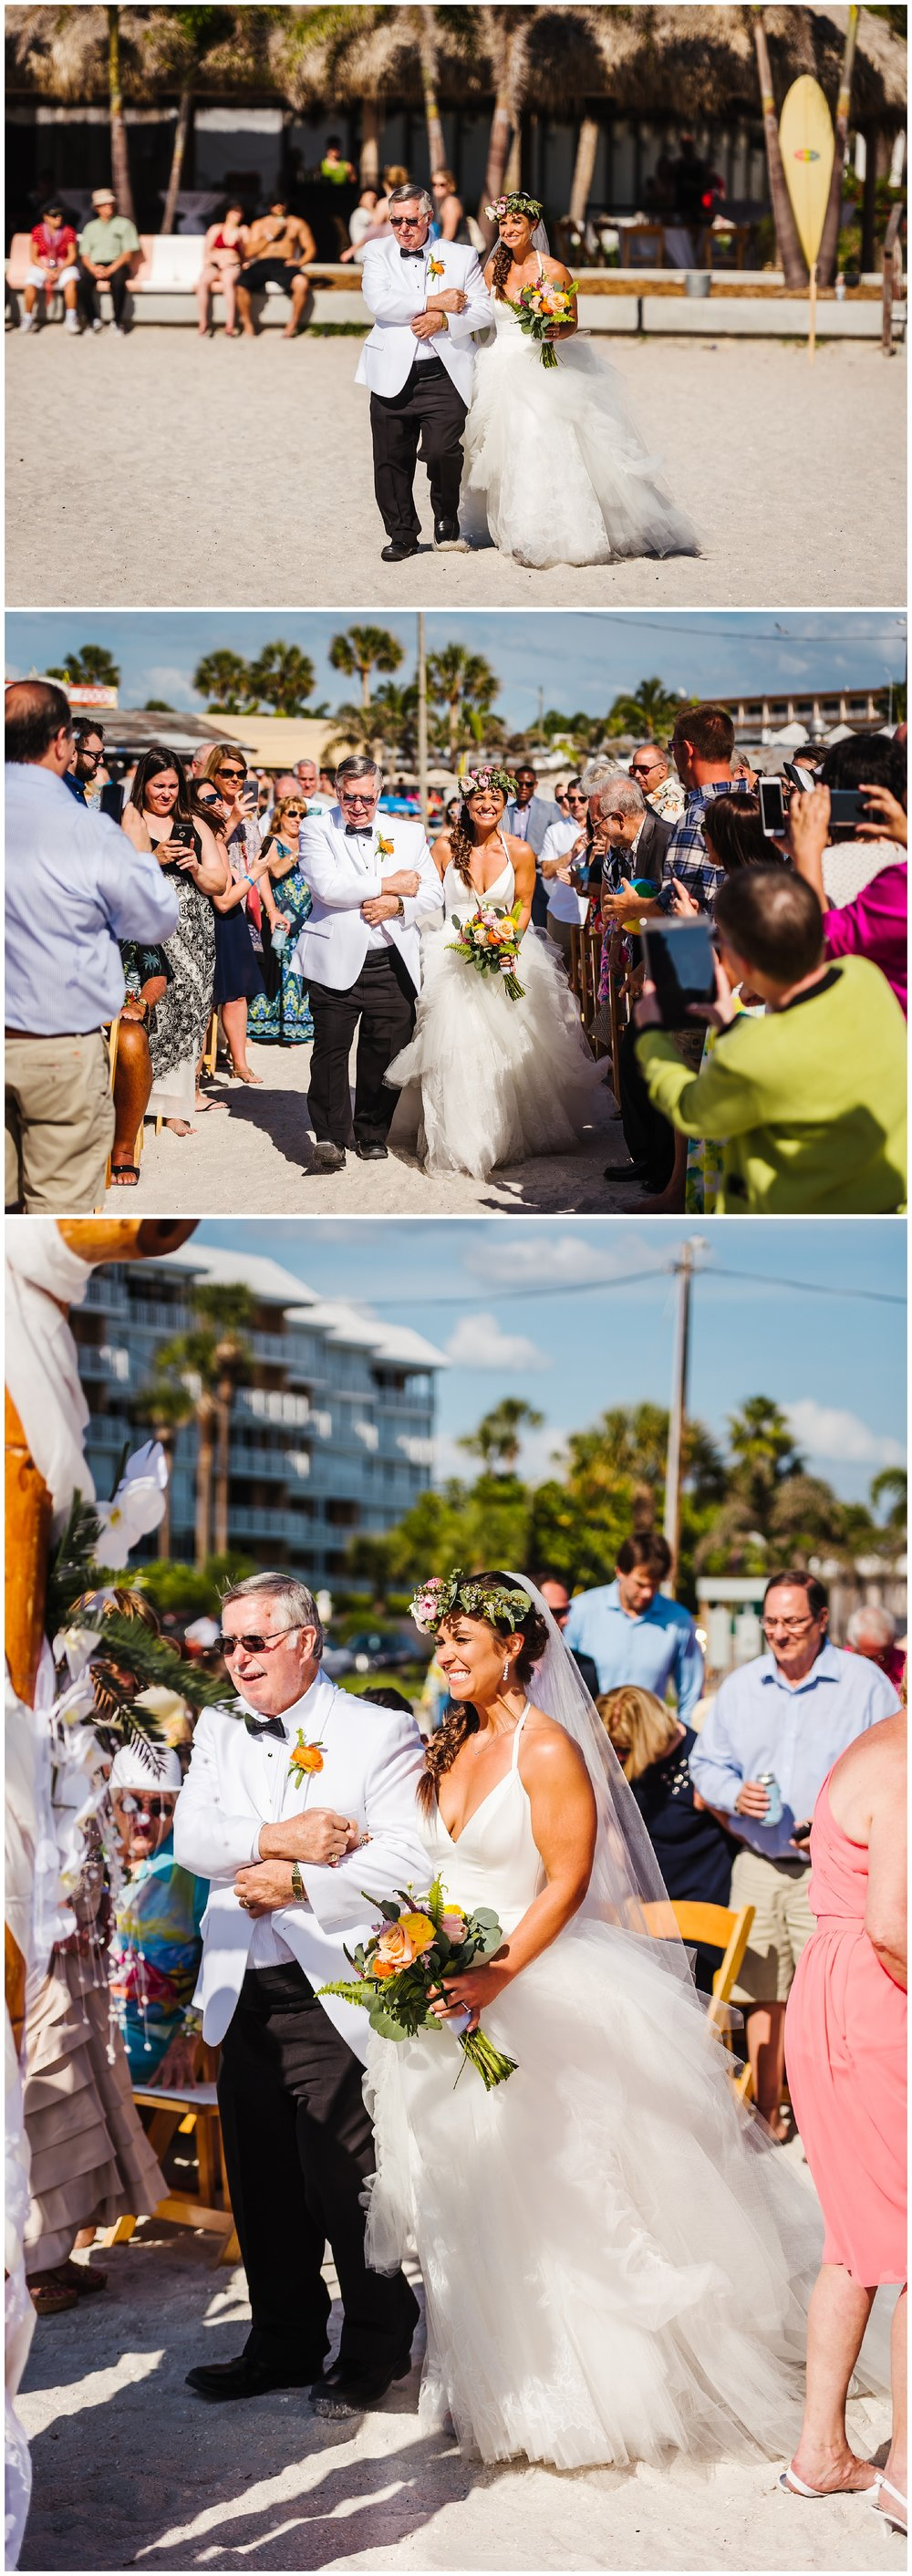 Tampa-wedding-photographer-vera-wang-flower-crown-post-card-inn_0020.jpg